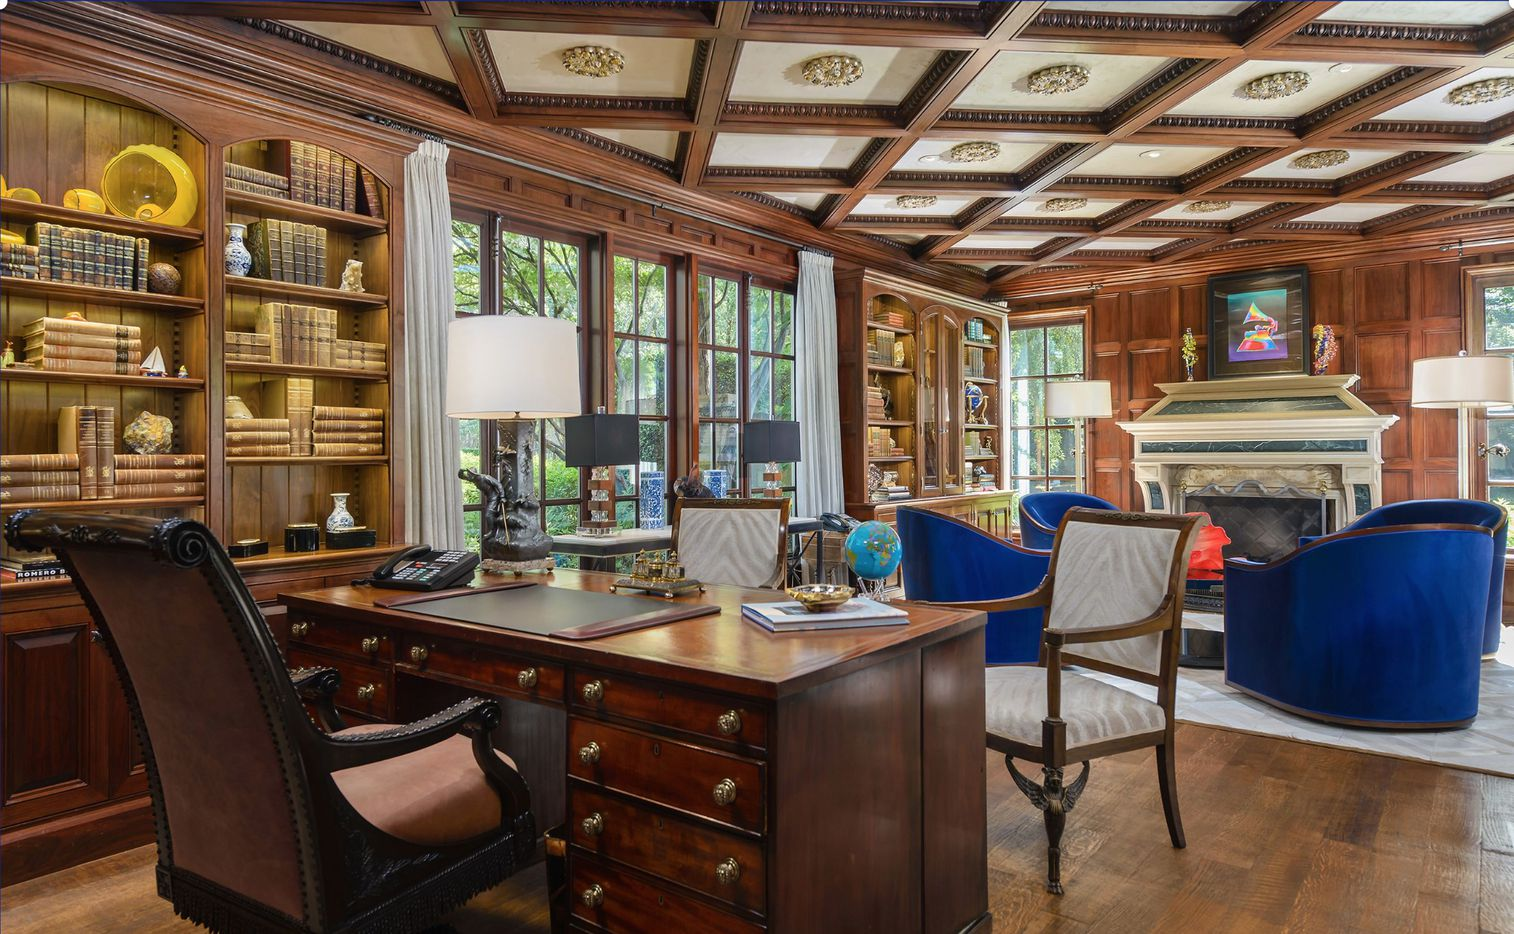 The Volk Estates mansion has almost 13,000 square feet of living space.